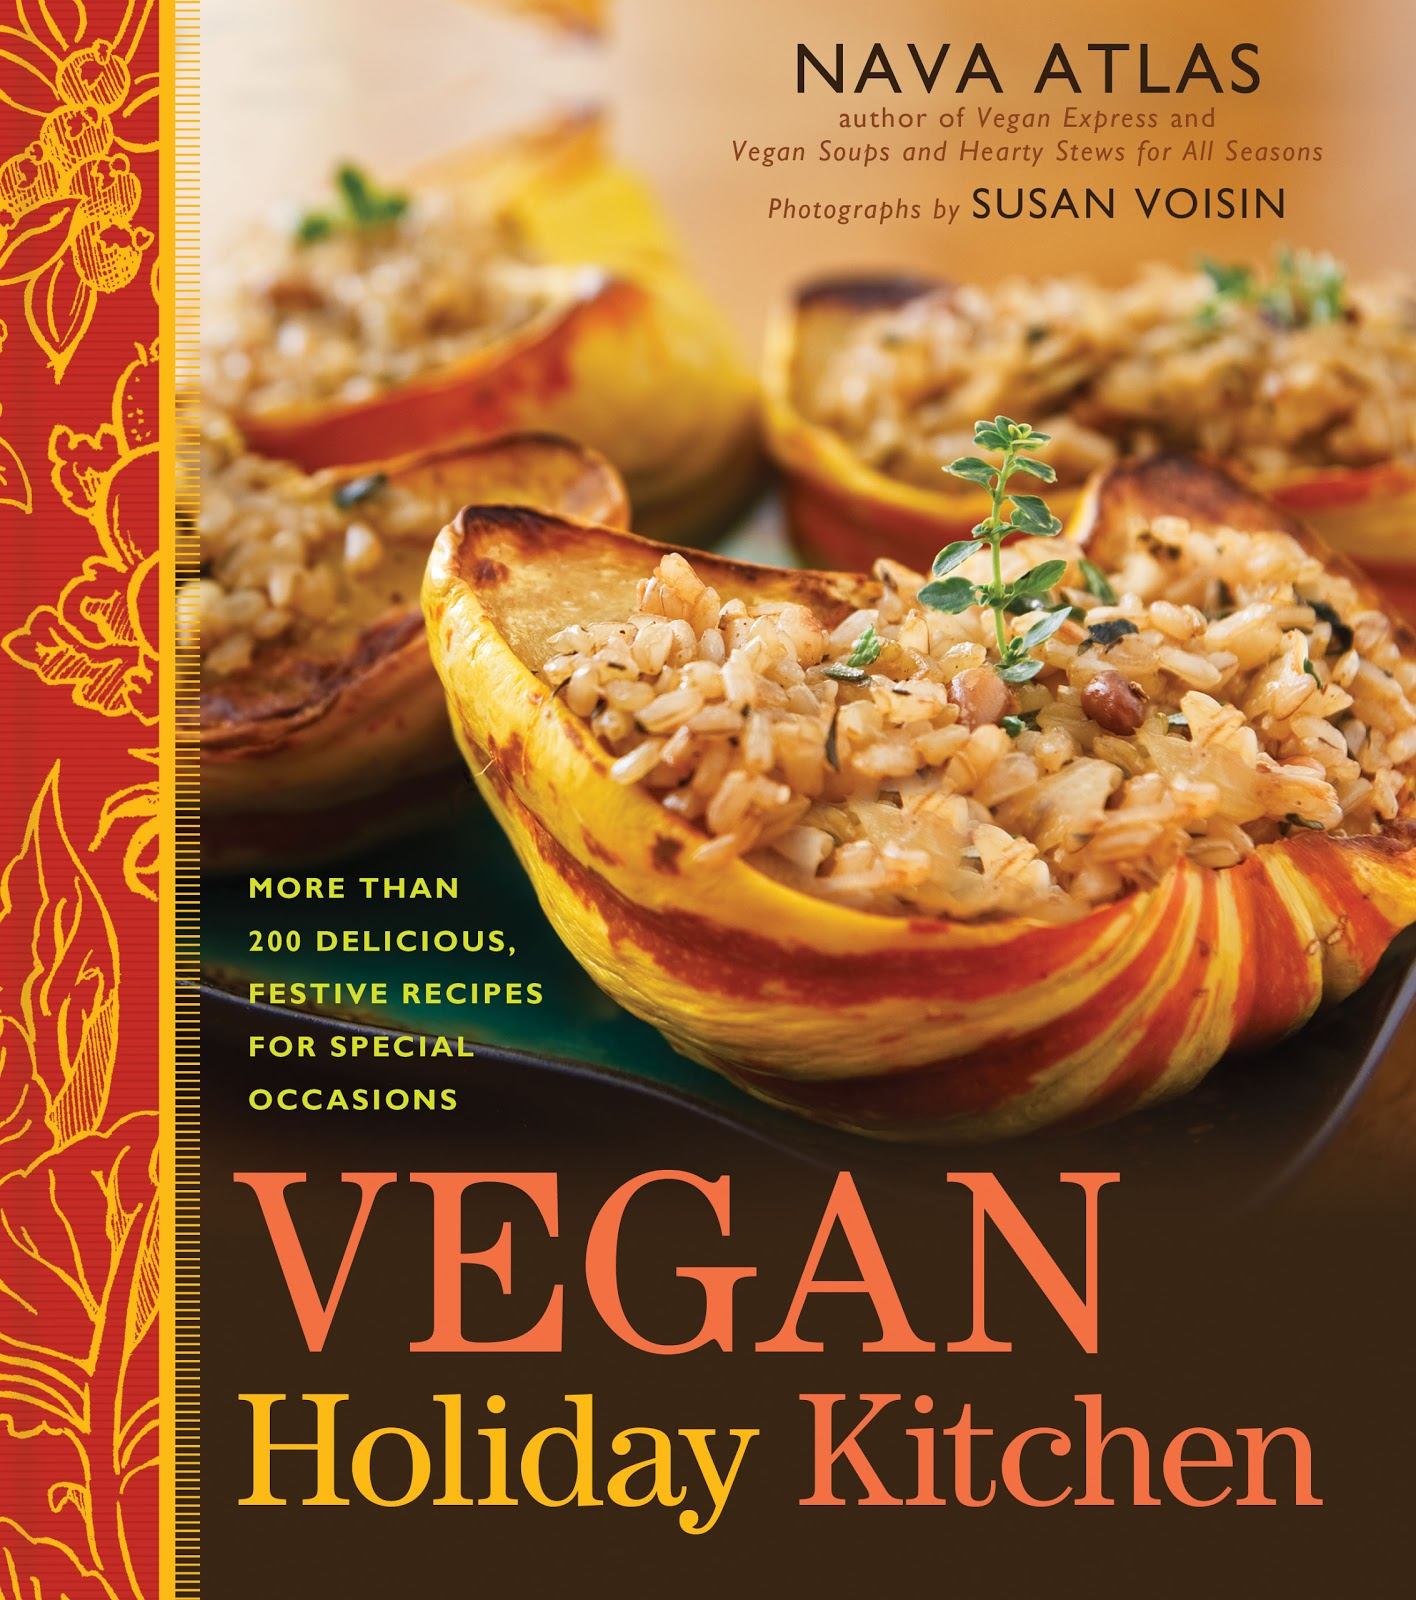 Best Cookbook Covers : Food ga cookbook review vegan holiday kitchen by